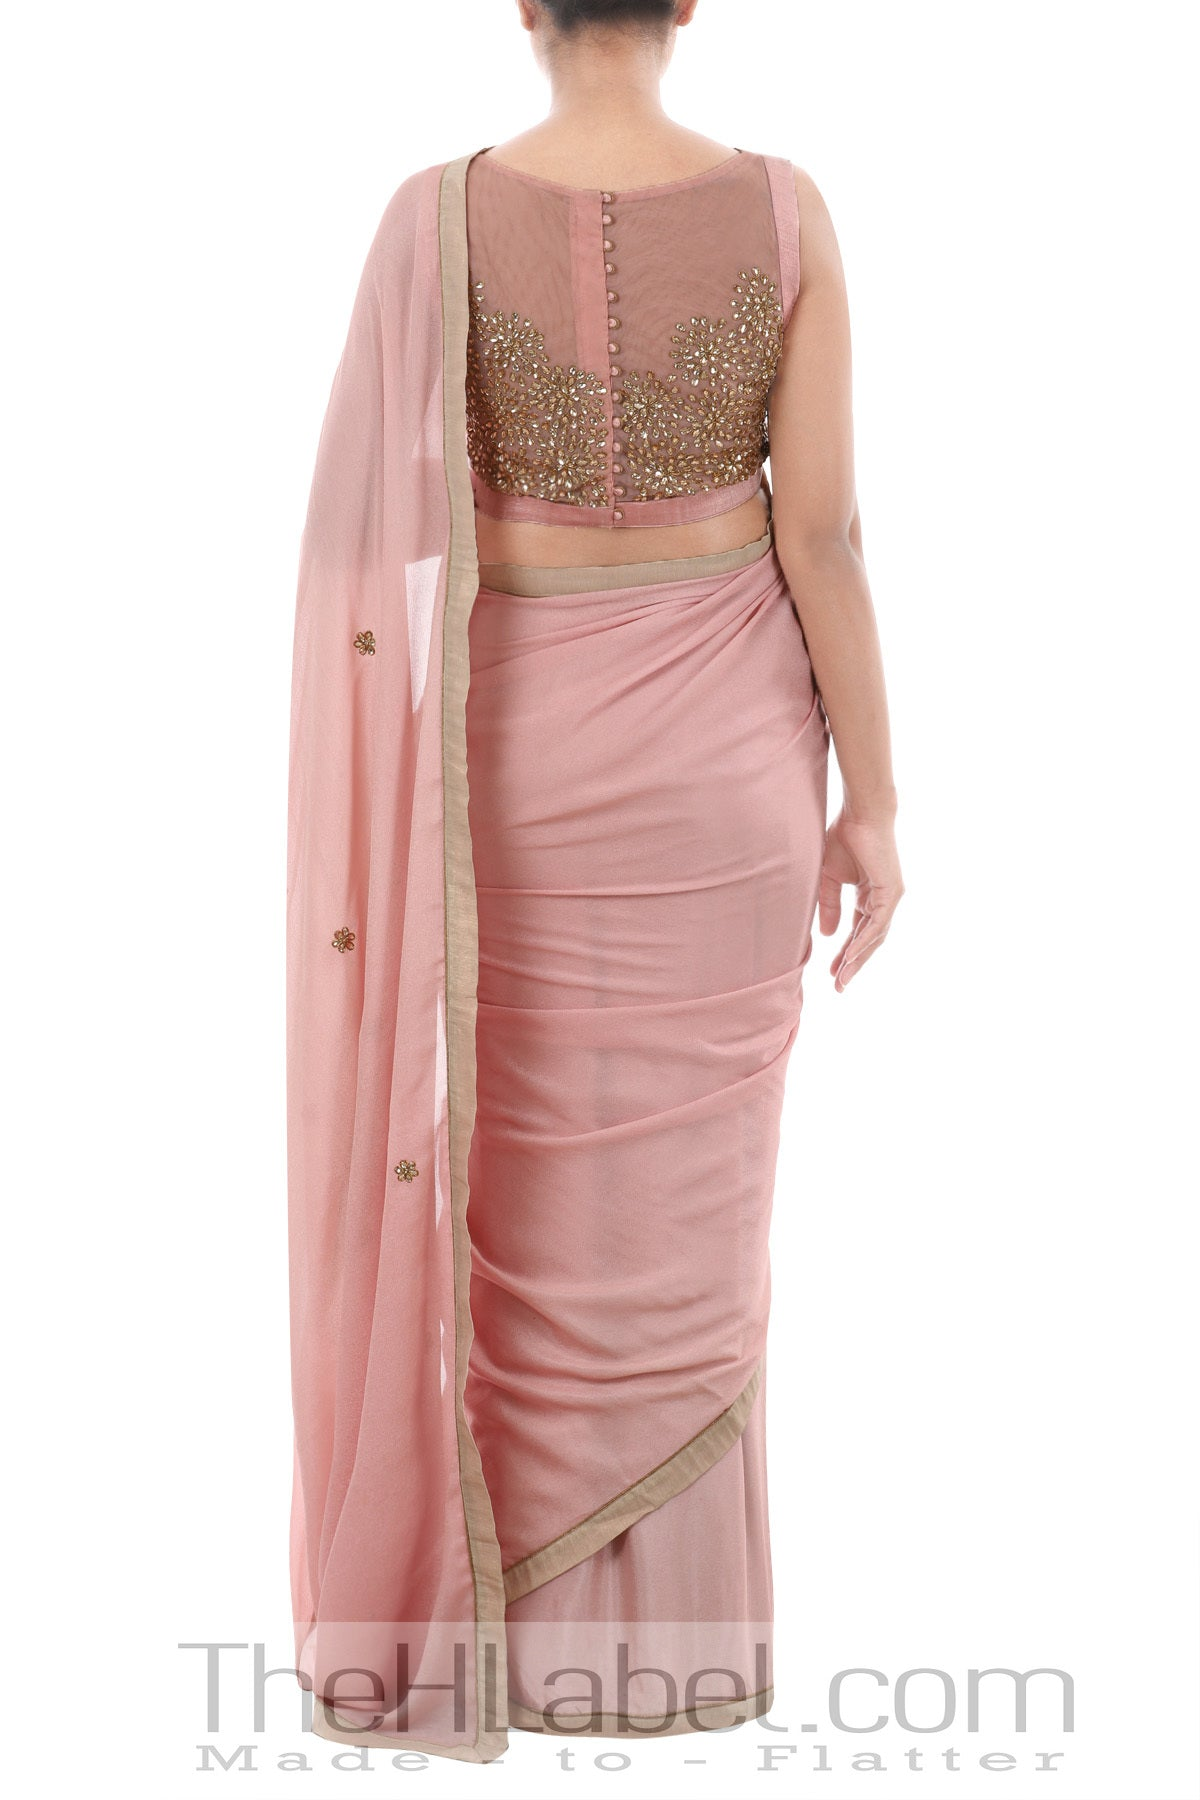 Kundan Embellished Crepe Sari with Boatneck Blouse